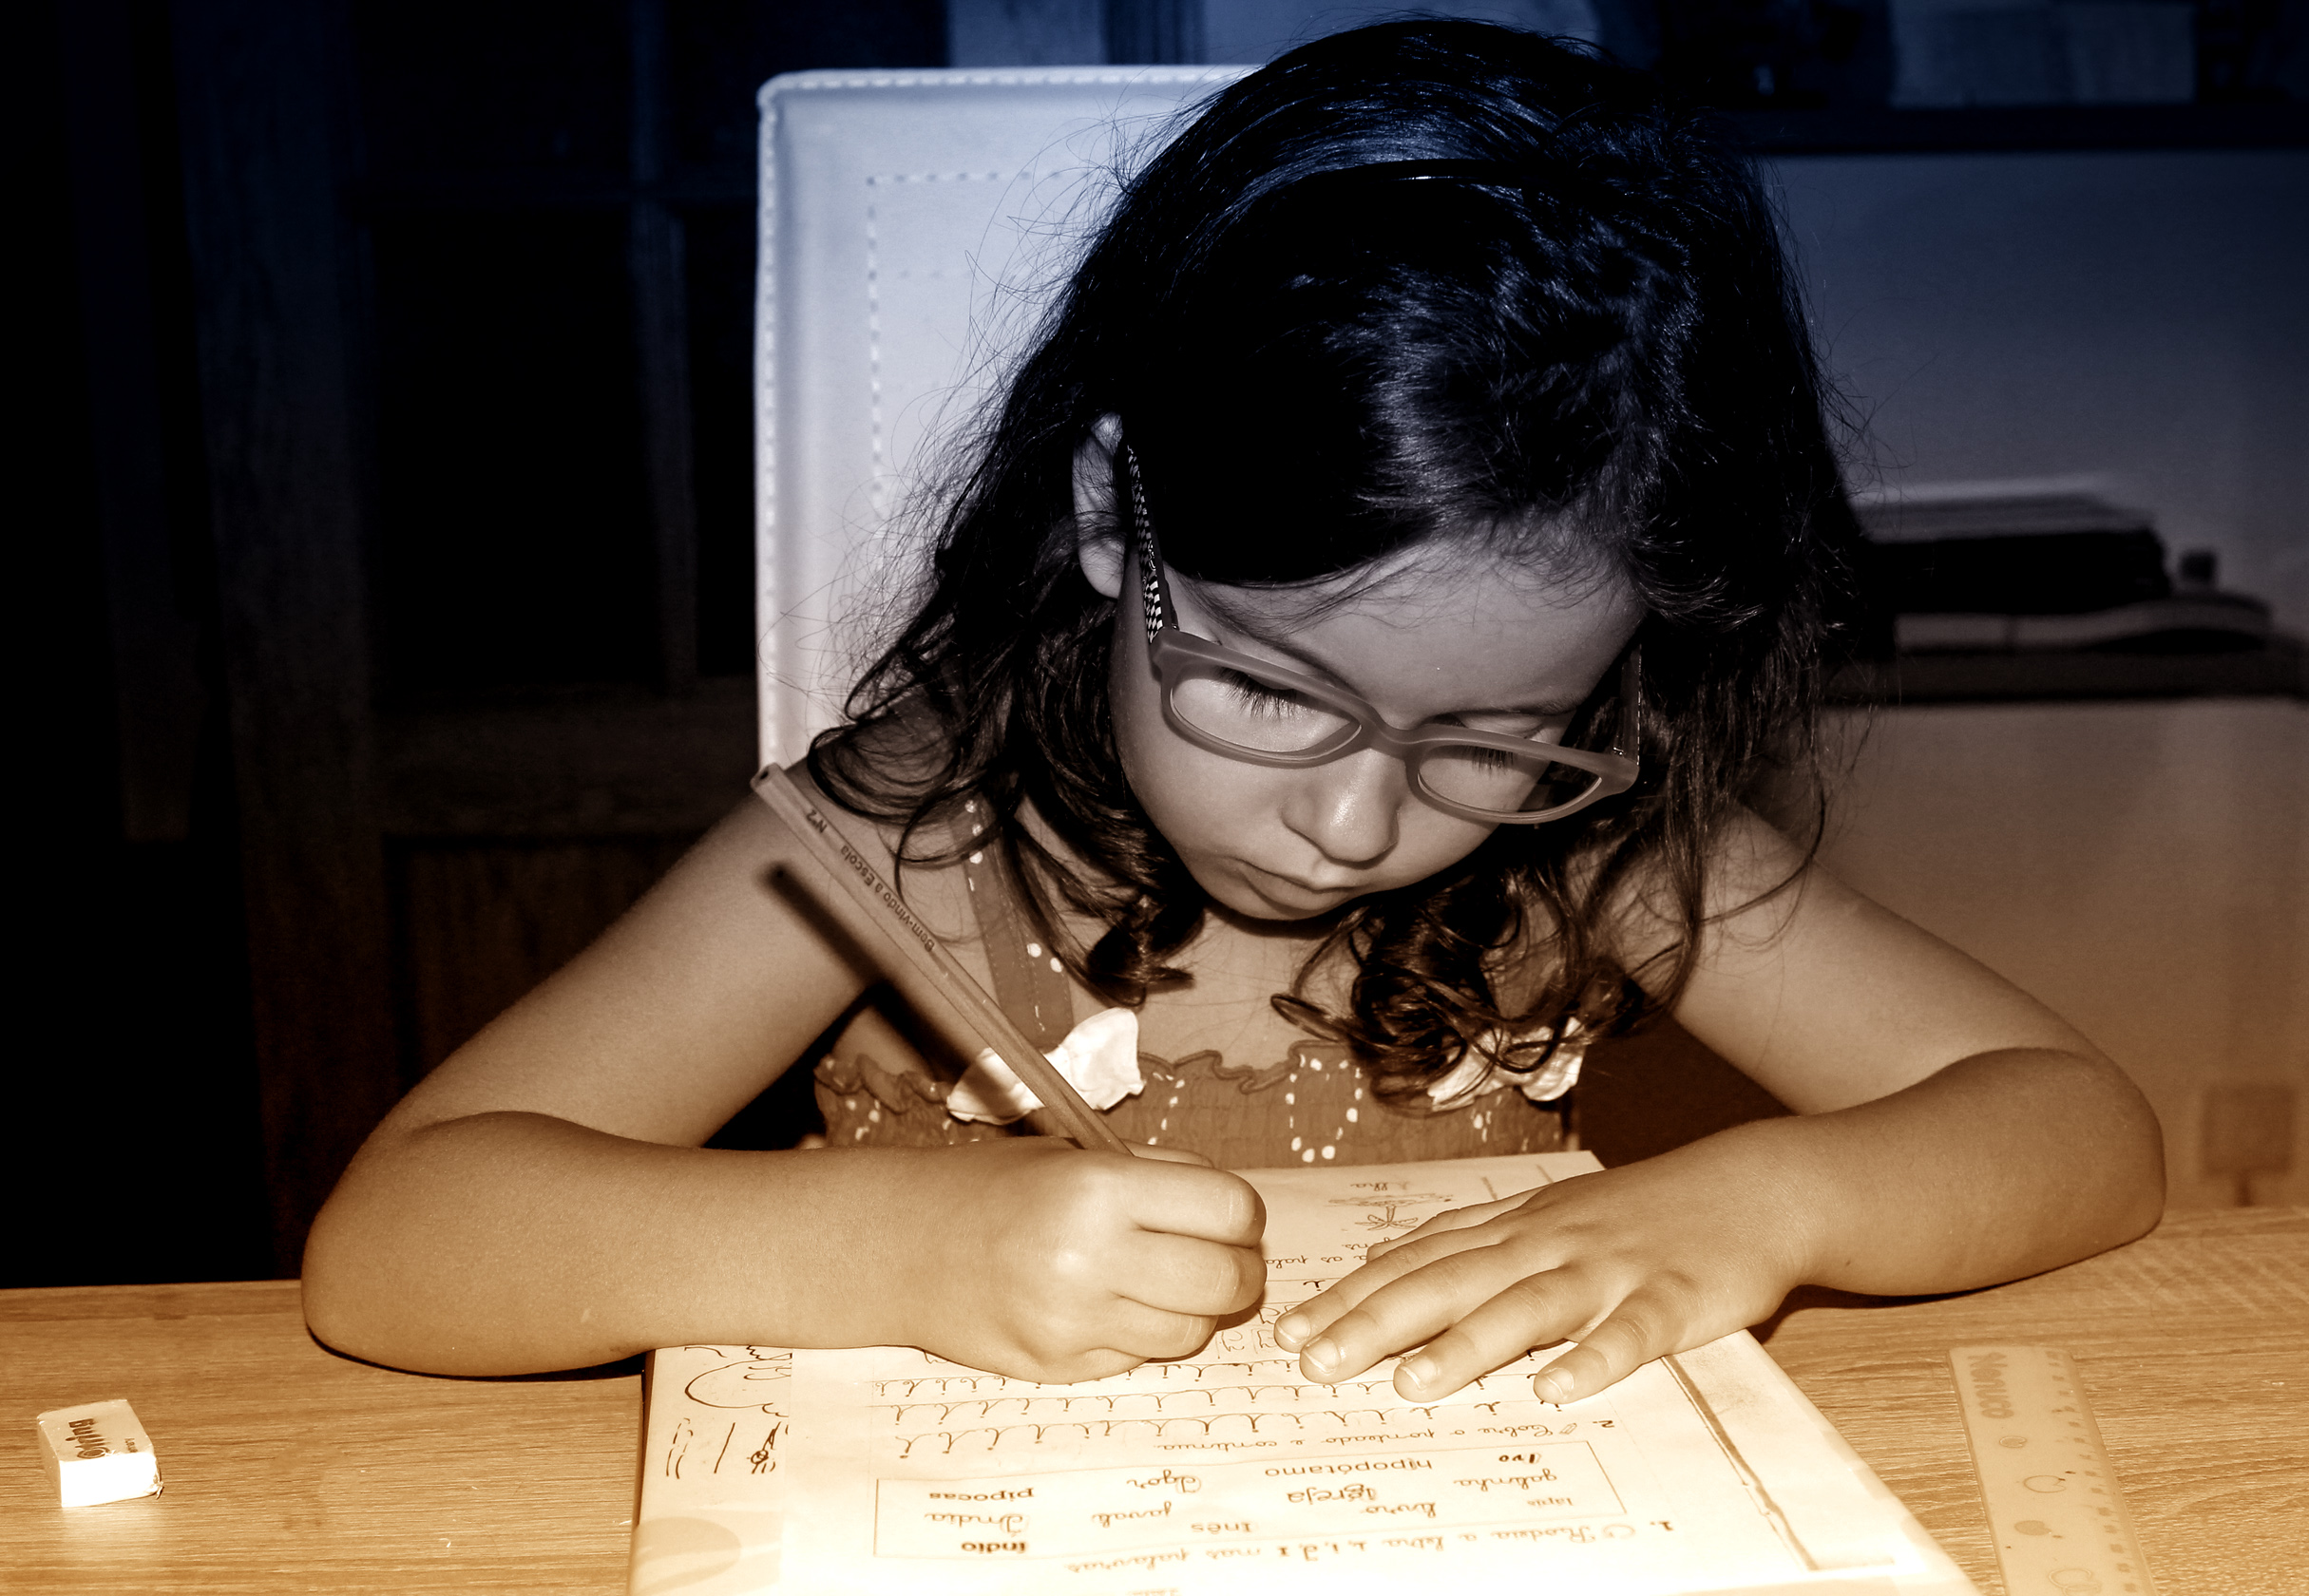 Little Girl Doing Homework, Active, Papers, Pink, Pigtails, HQ Photo